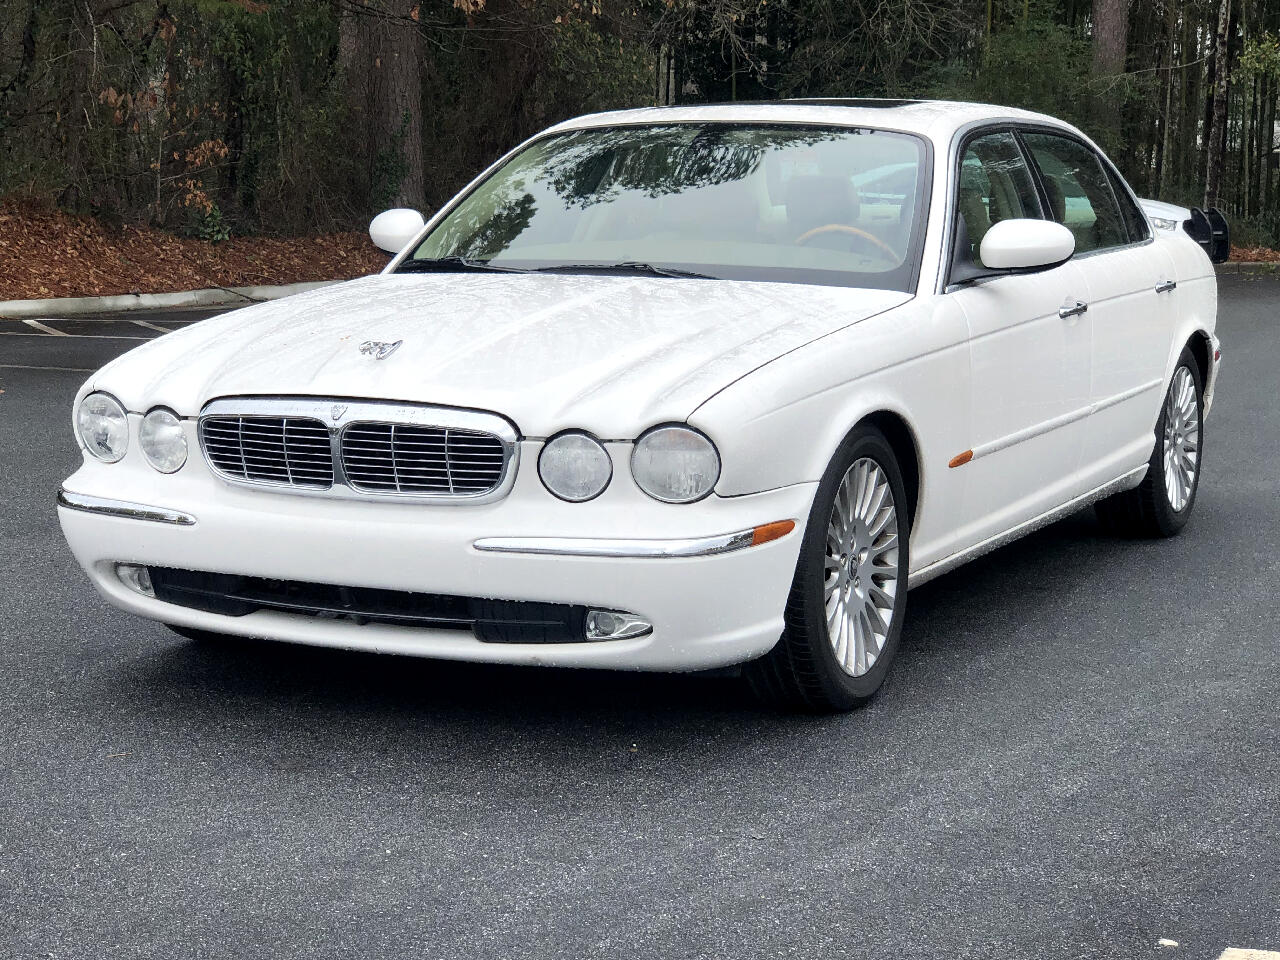 2005 Jaguar XJ-Series XJ8L